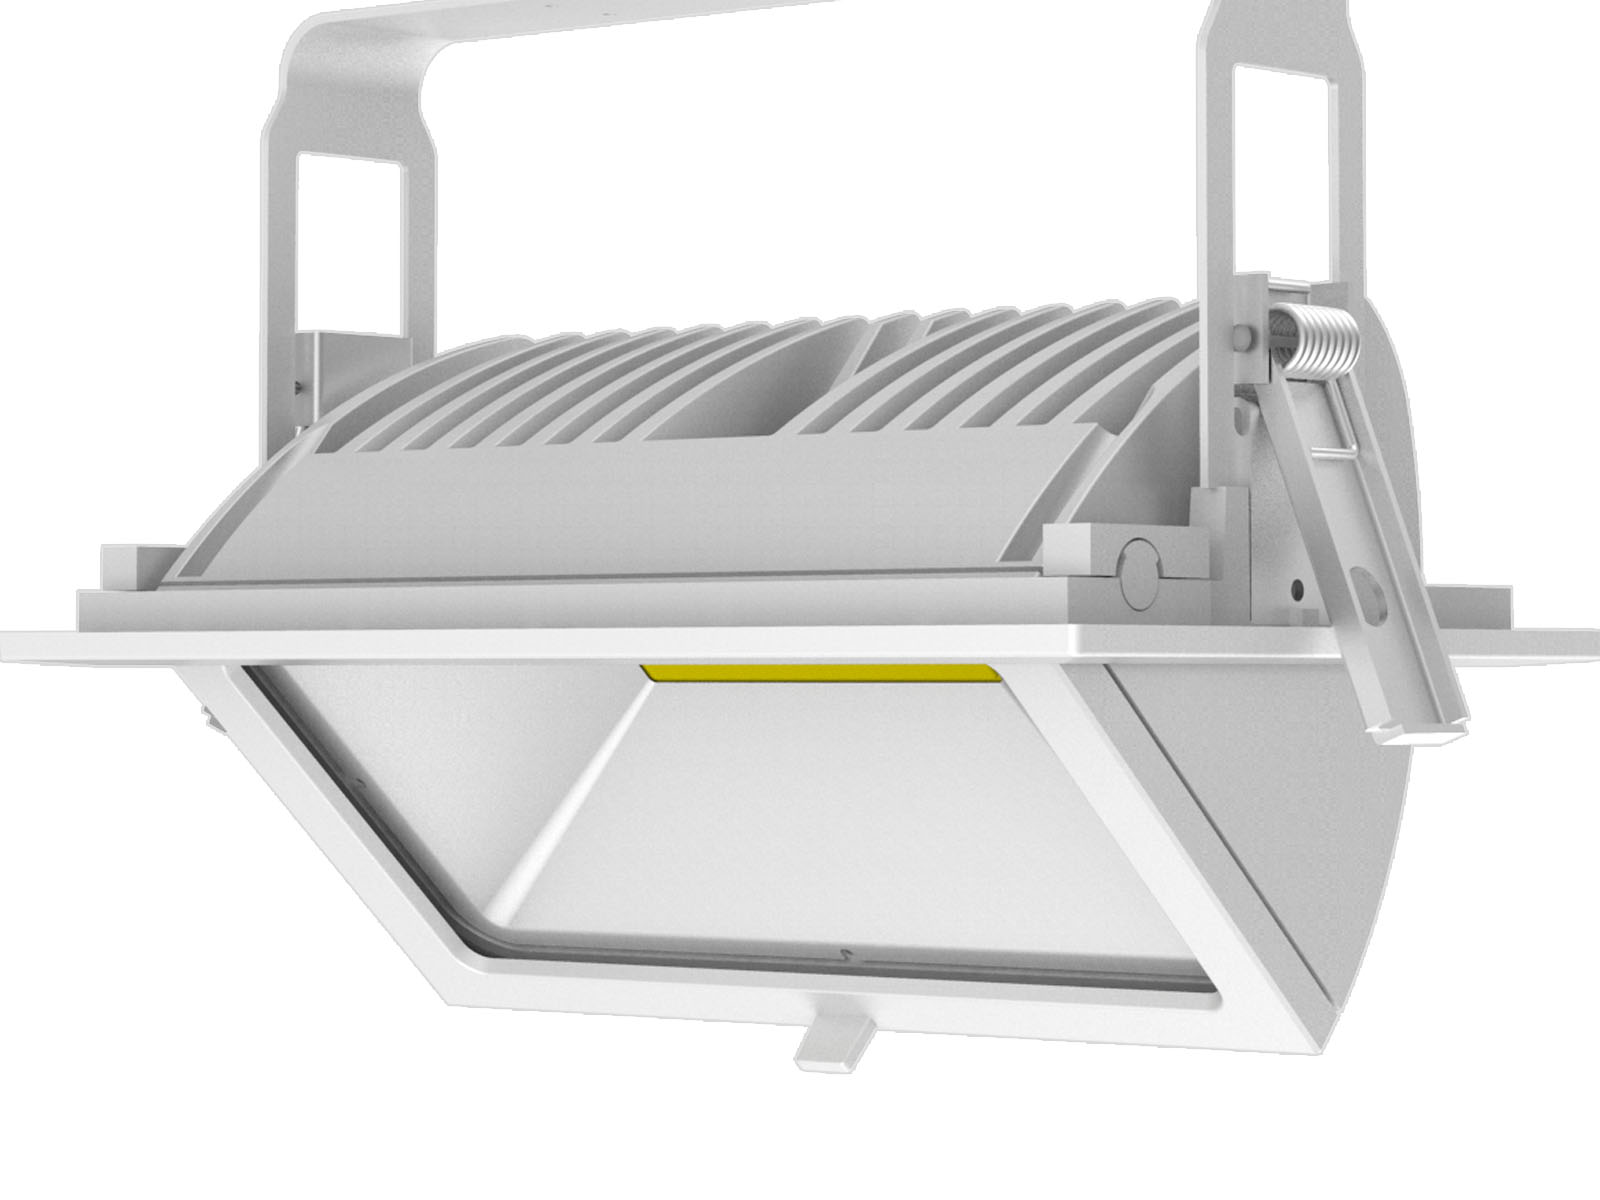 RD01 2 Recessed Led Downlight